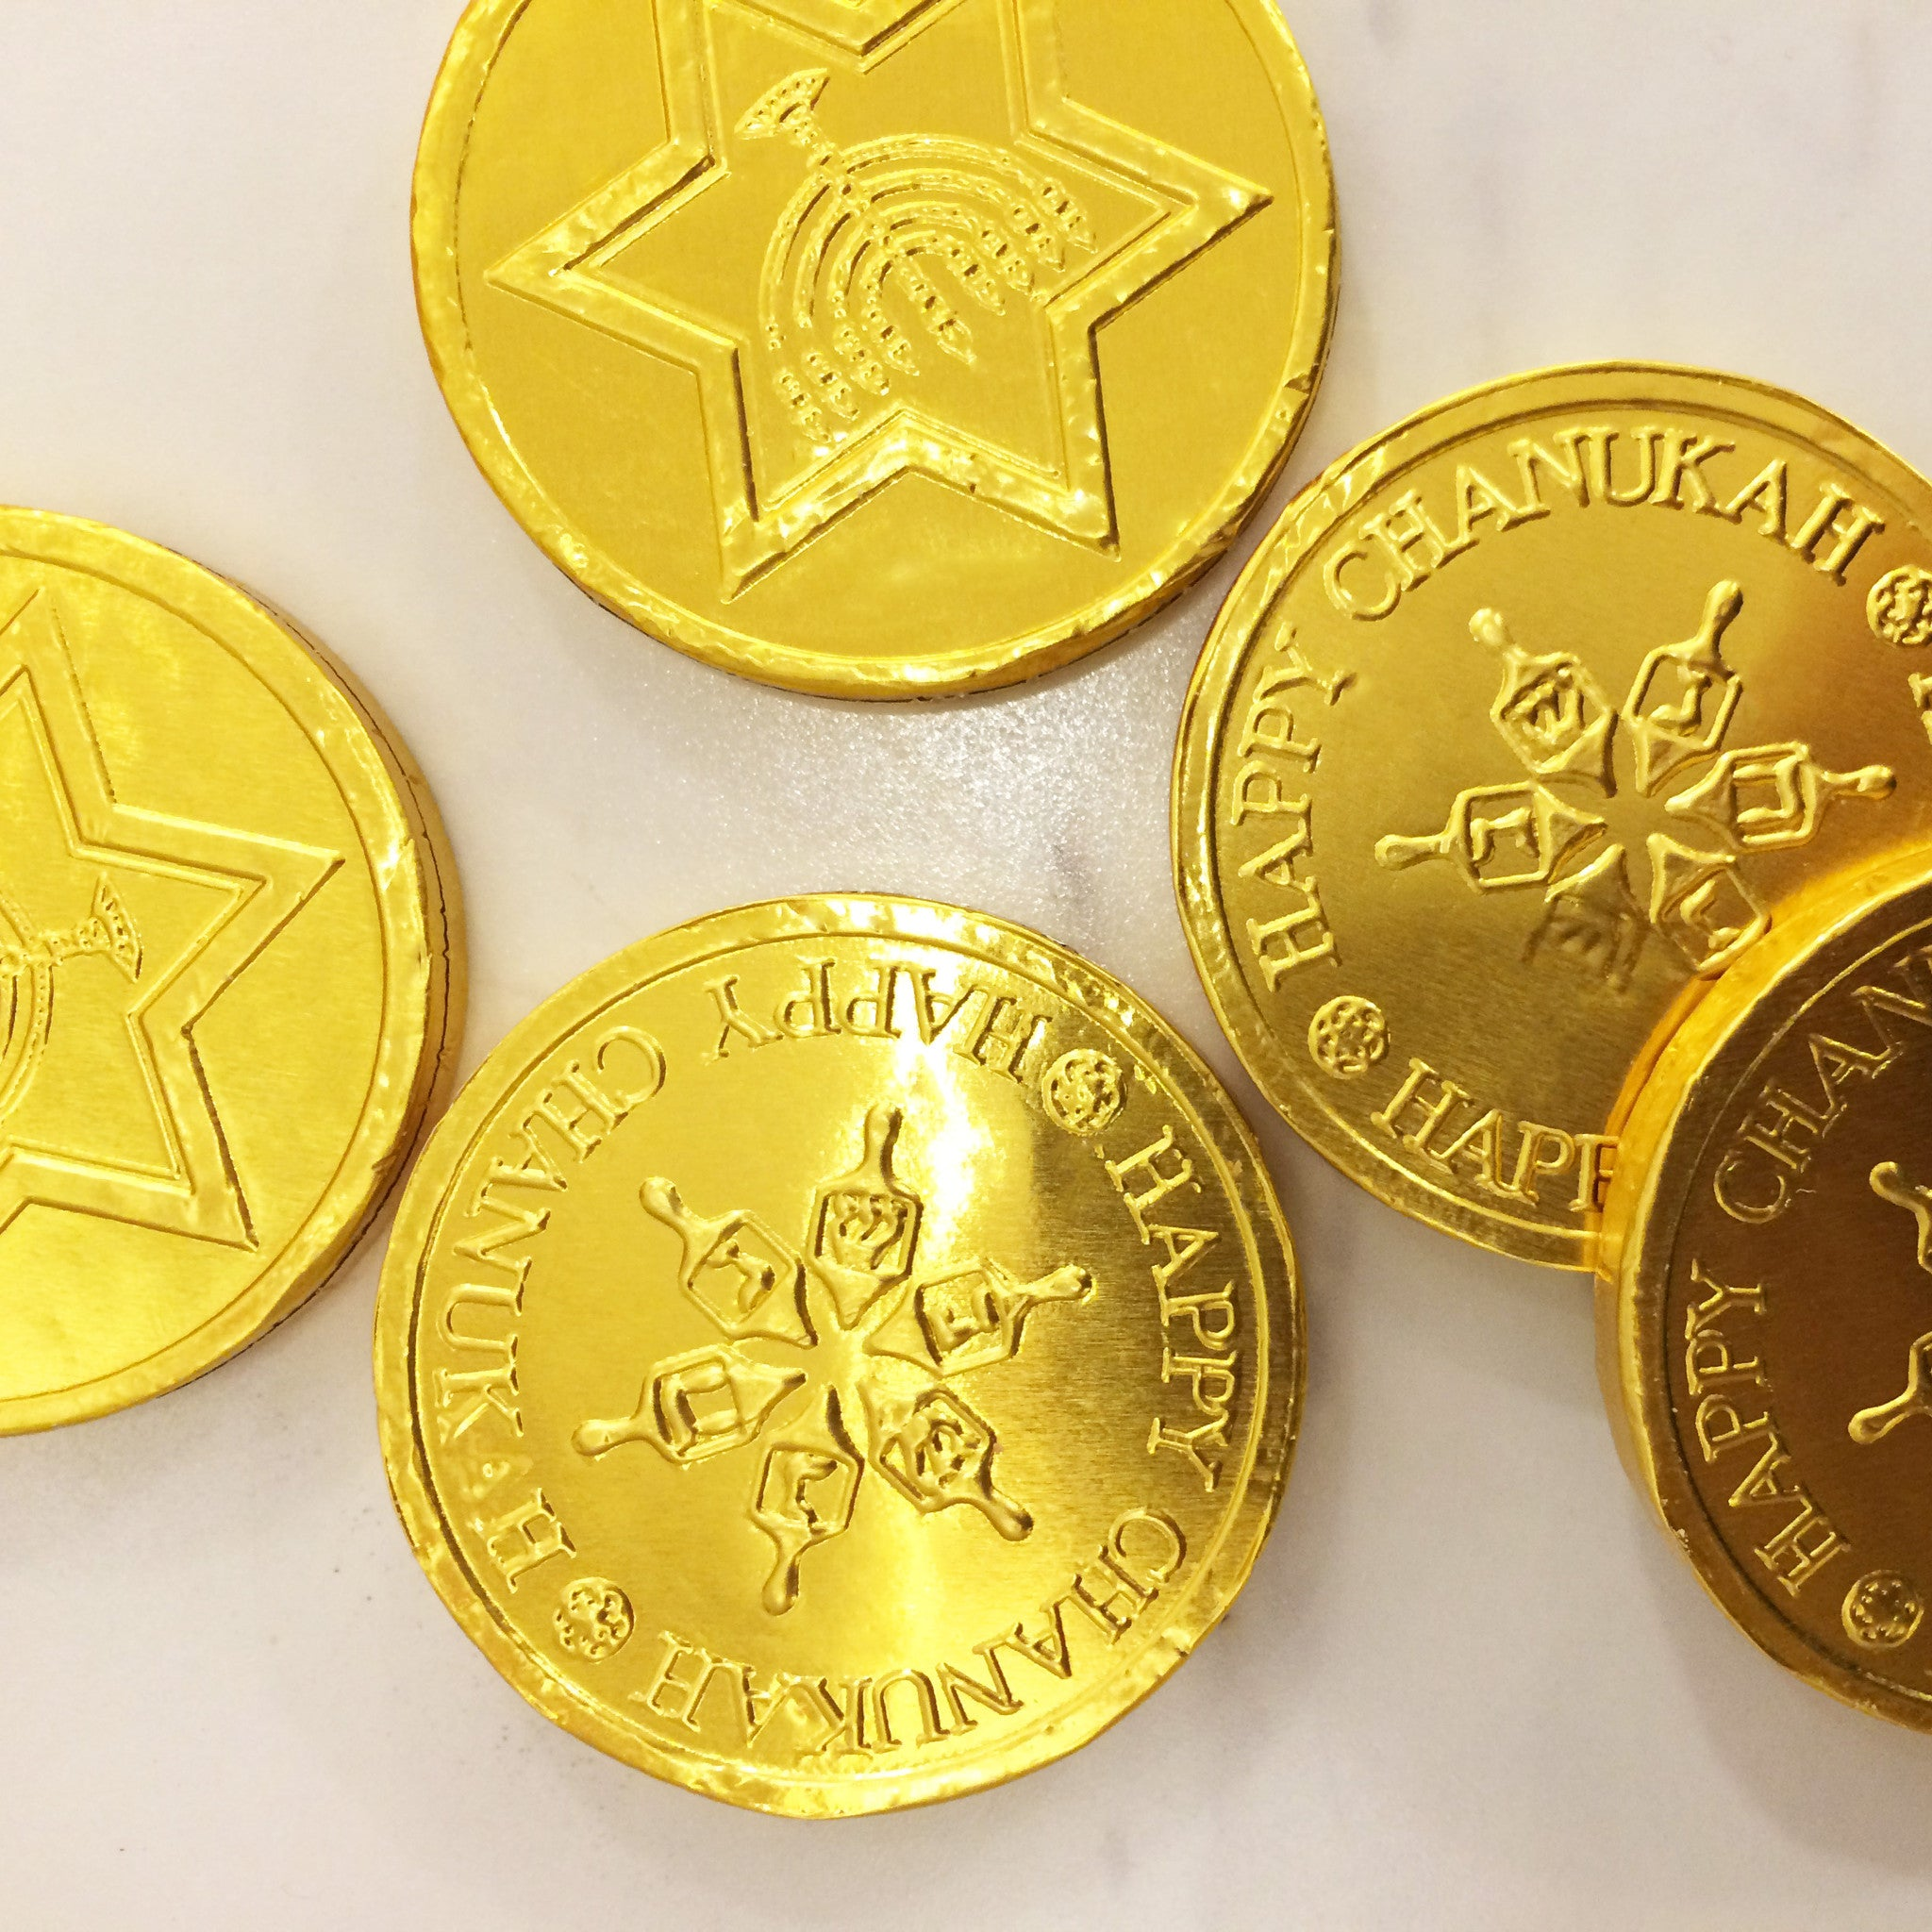 Gold Coins for Hanukkah - The Chocolate Delicacy